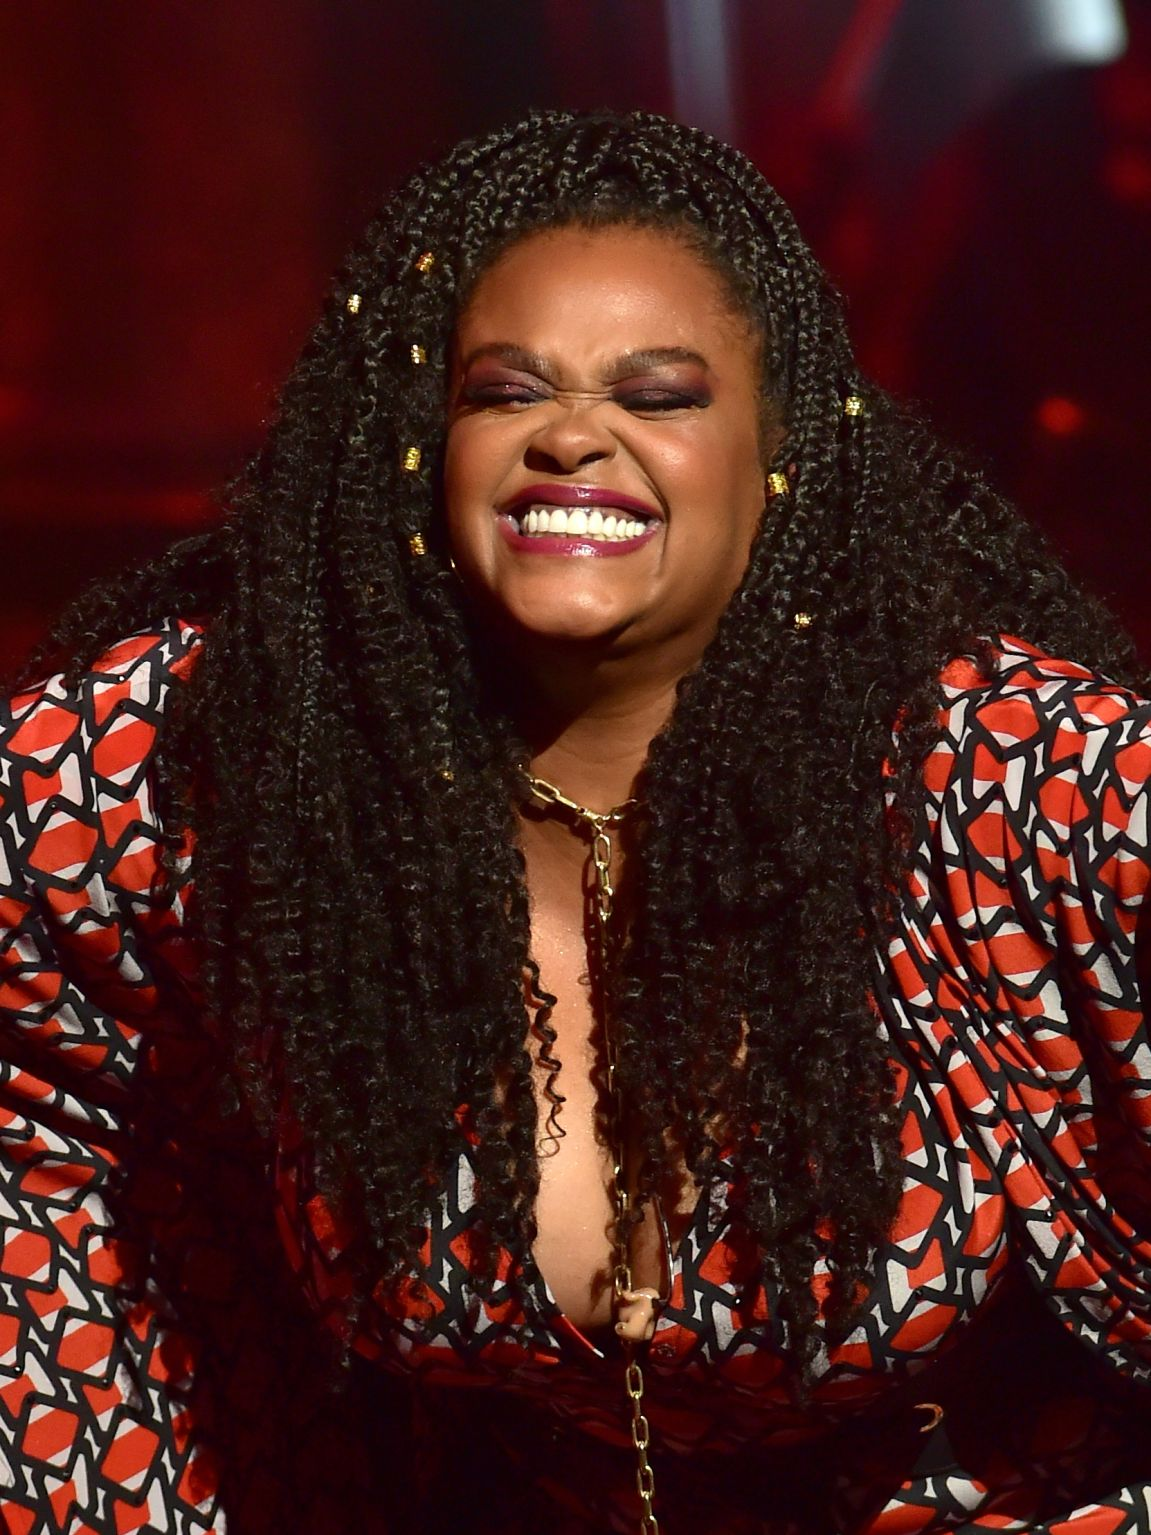 Jill Scott Considers Moving From The US To Protect Her 12 Year Old Son